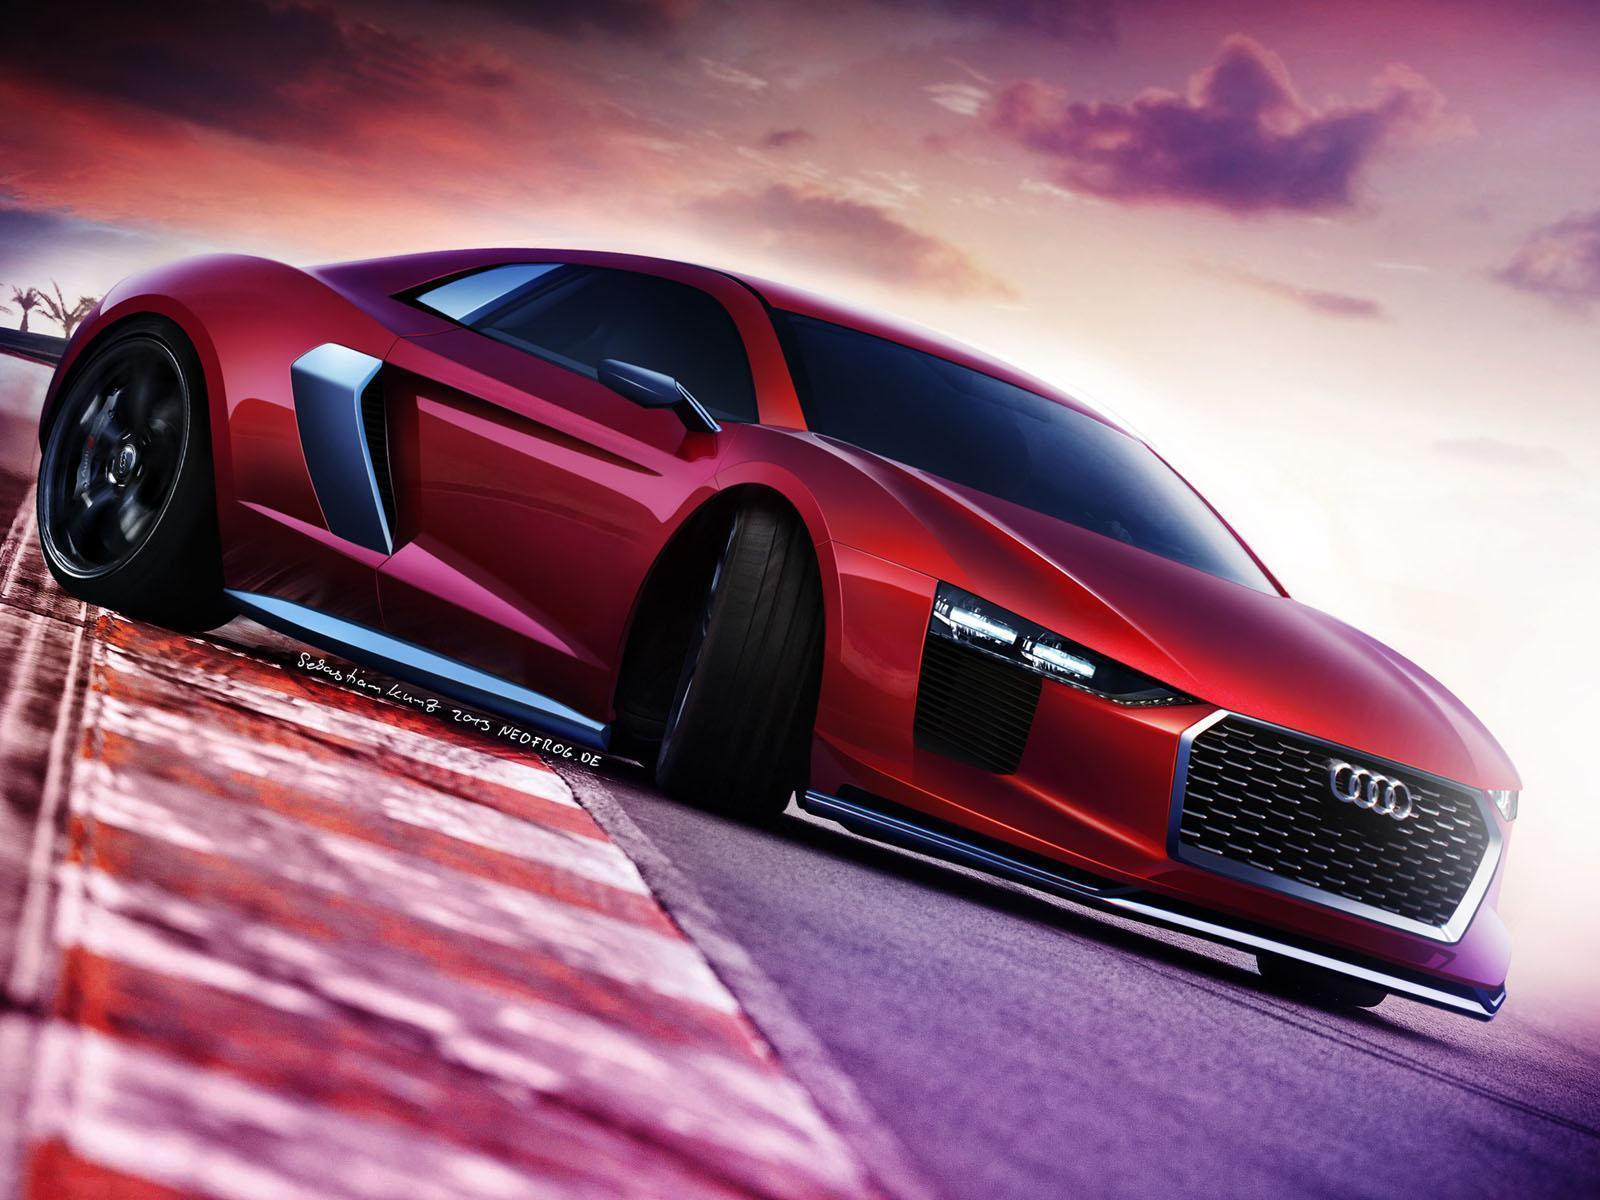 Audi R8 Red Wallpapers Top Free Audi R8 Red Backgrounds Wallpaperaccess